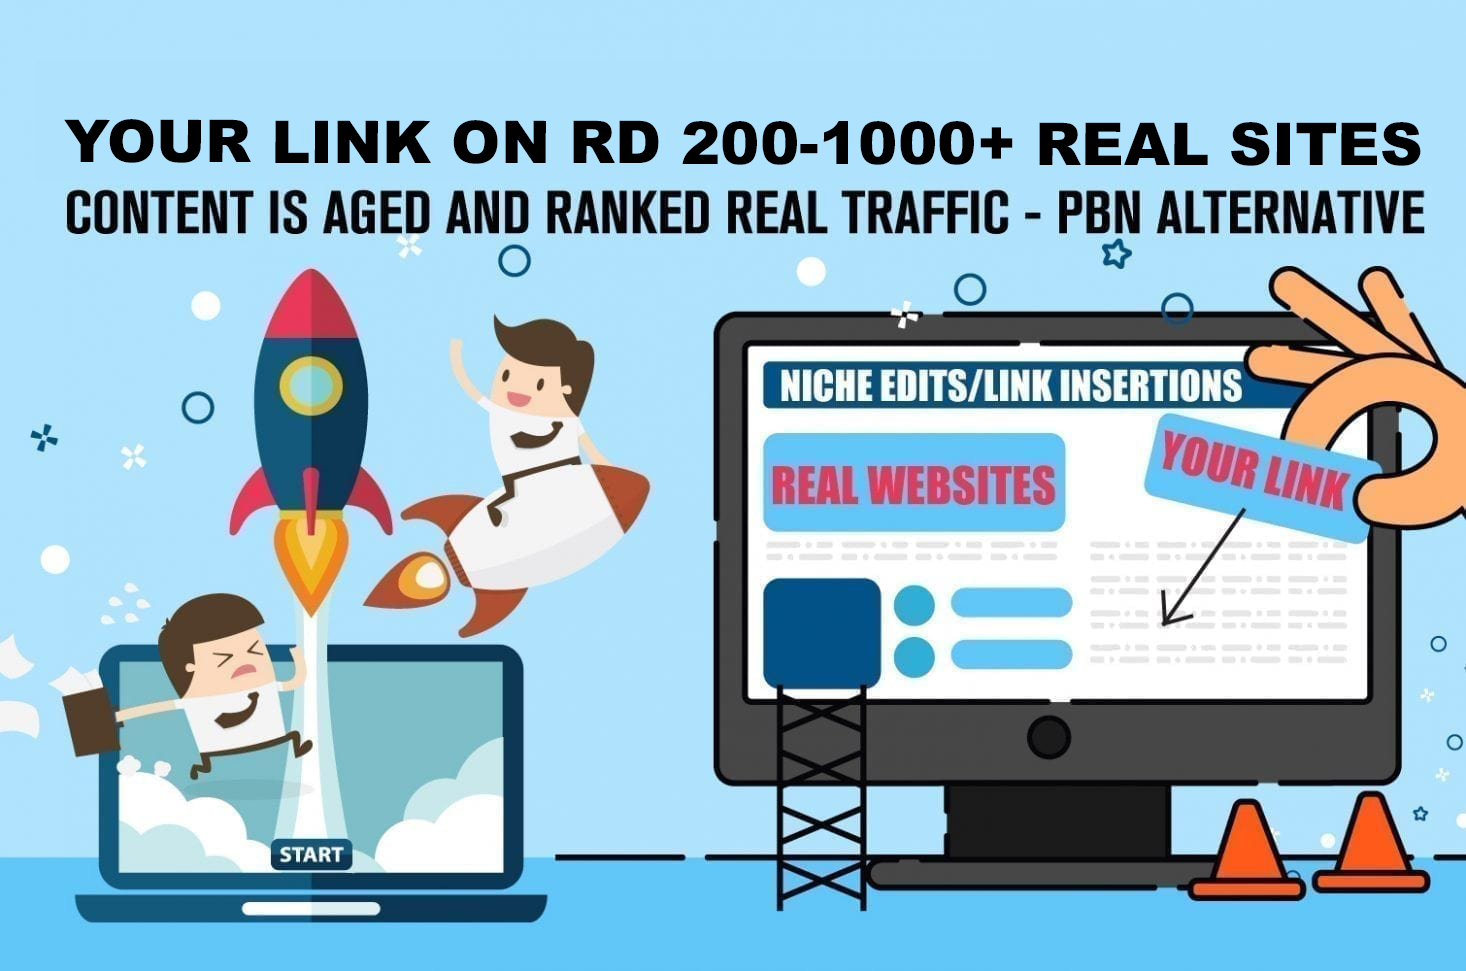 curated link building inserts niche edit 1 Link insertion on RD upto 200 with dofollow link